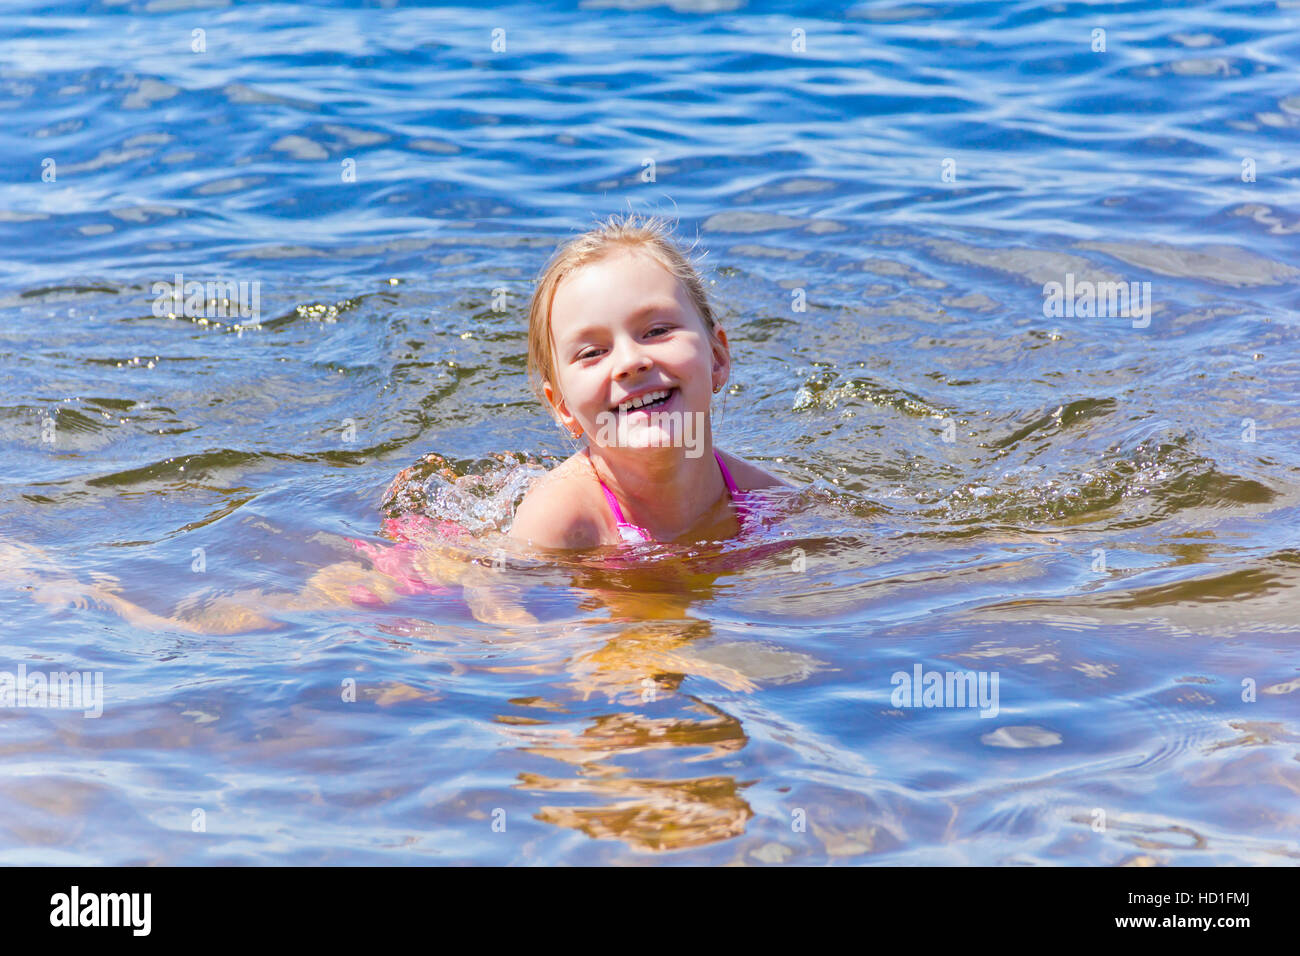 Swimming smiling cute girl seven years old - Stock Image